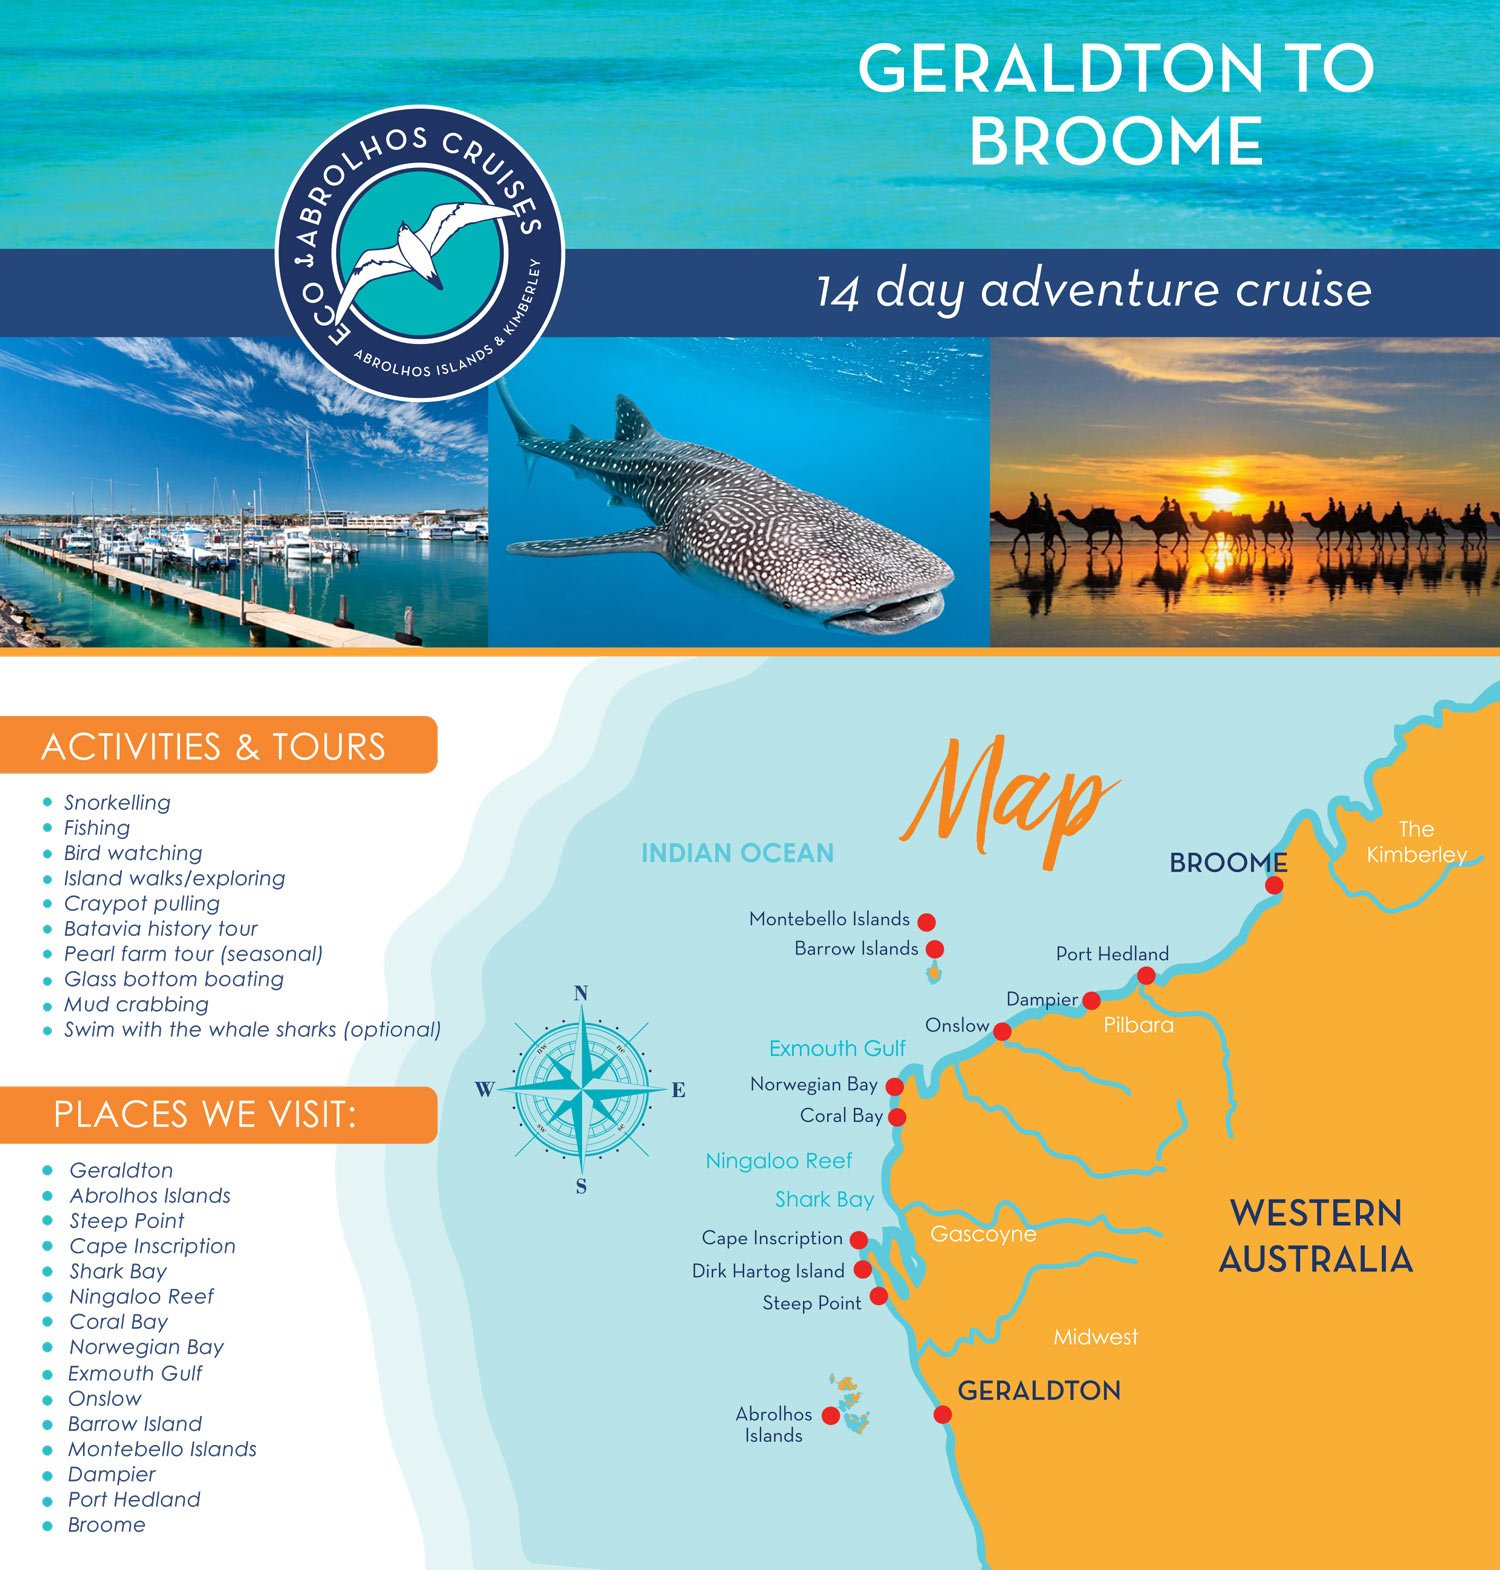 Geraldton to Broome adventure Cruise